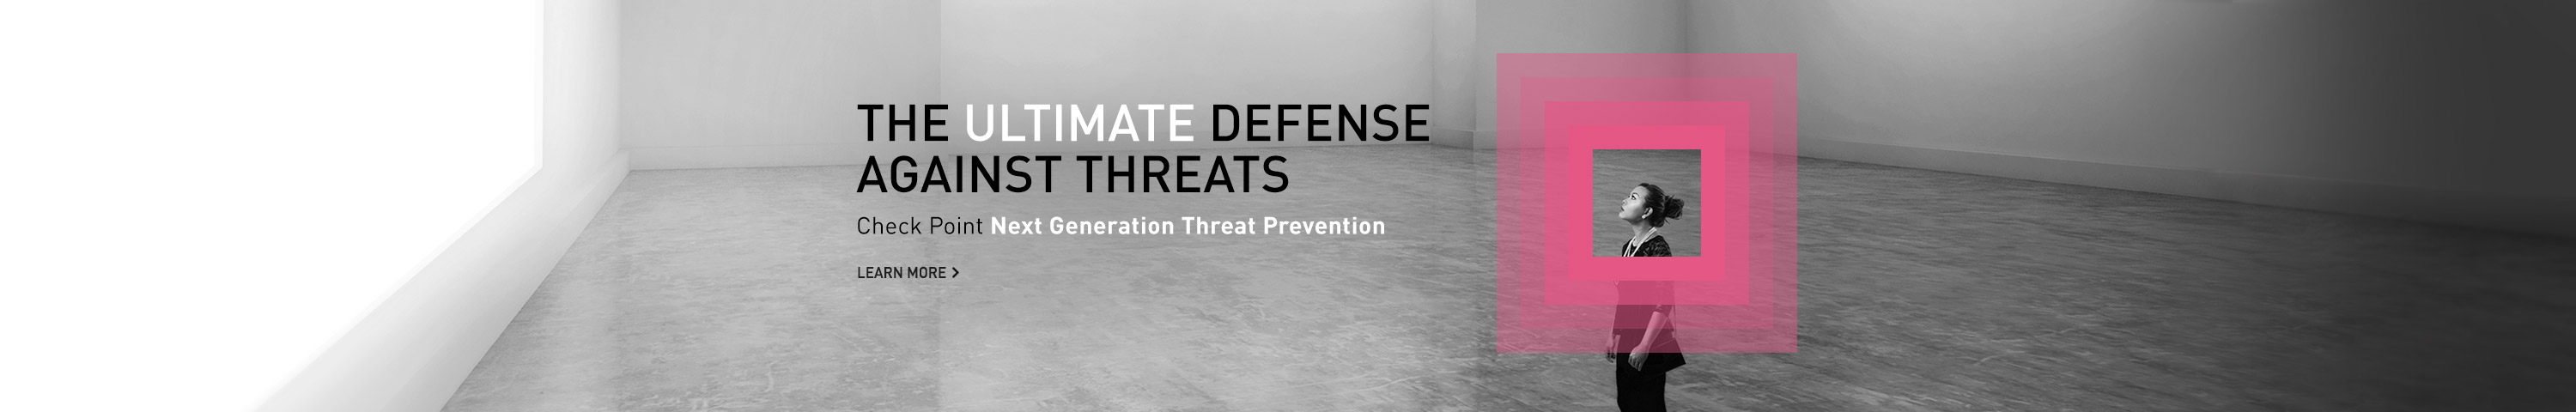 hpbanner_threatprevention_final